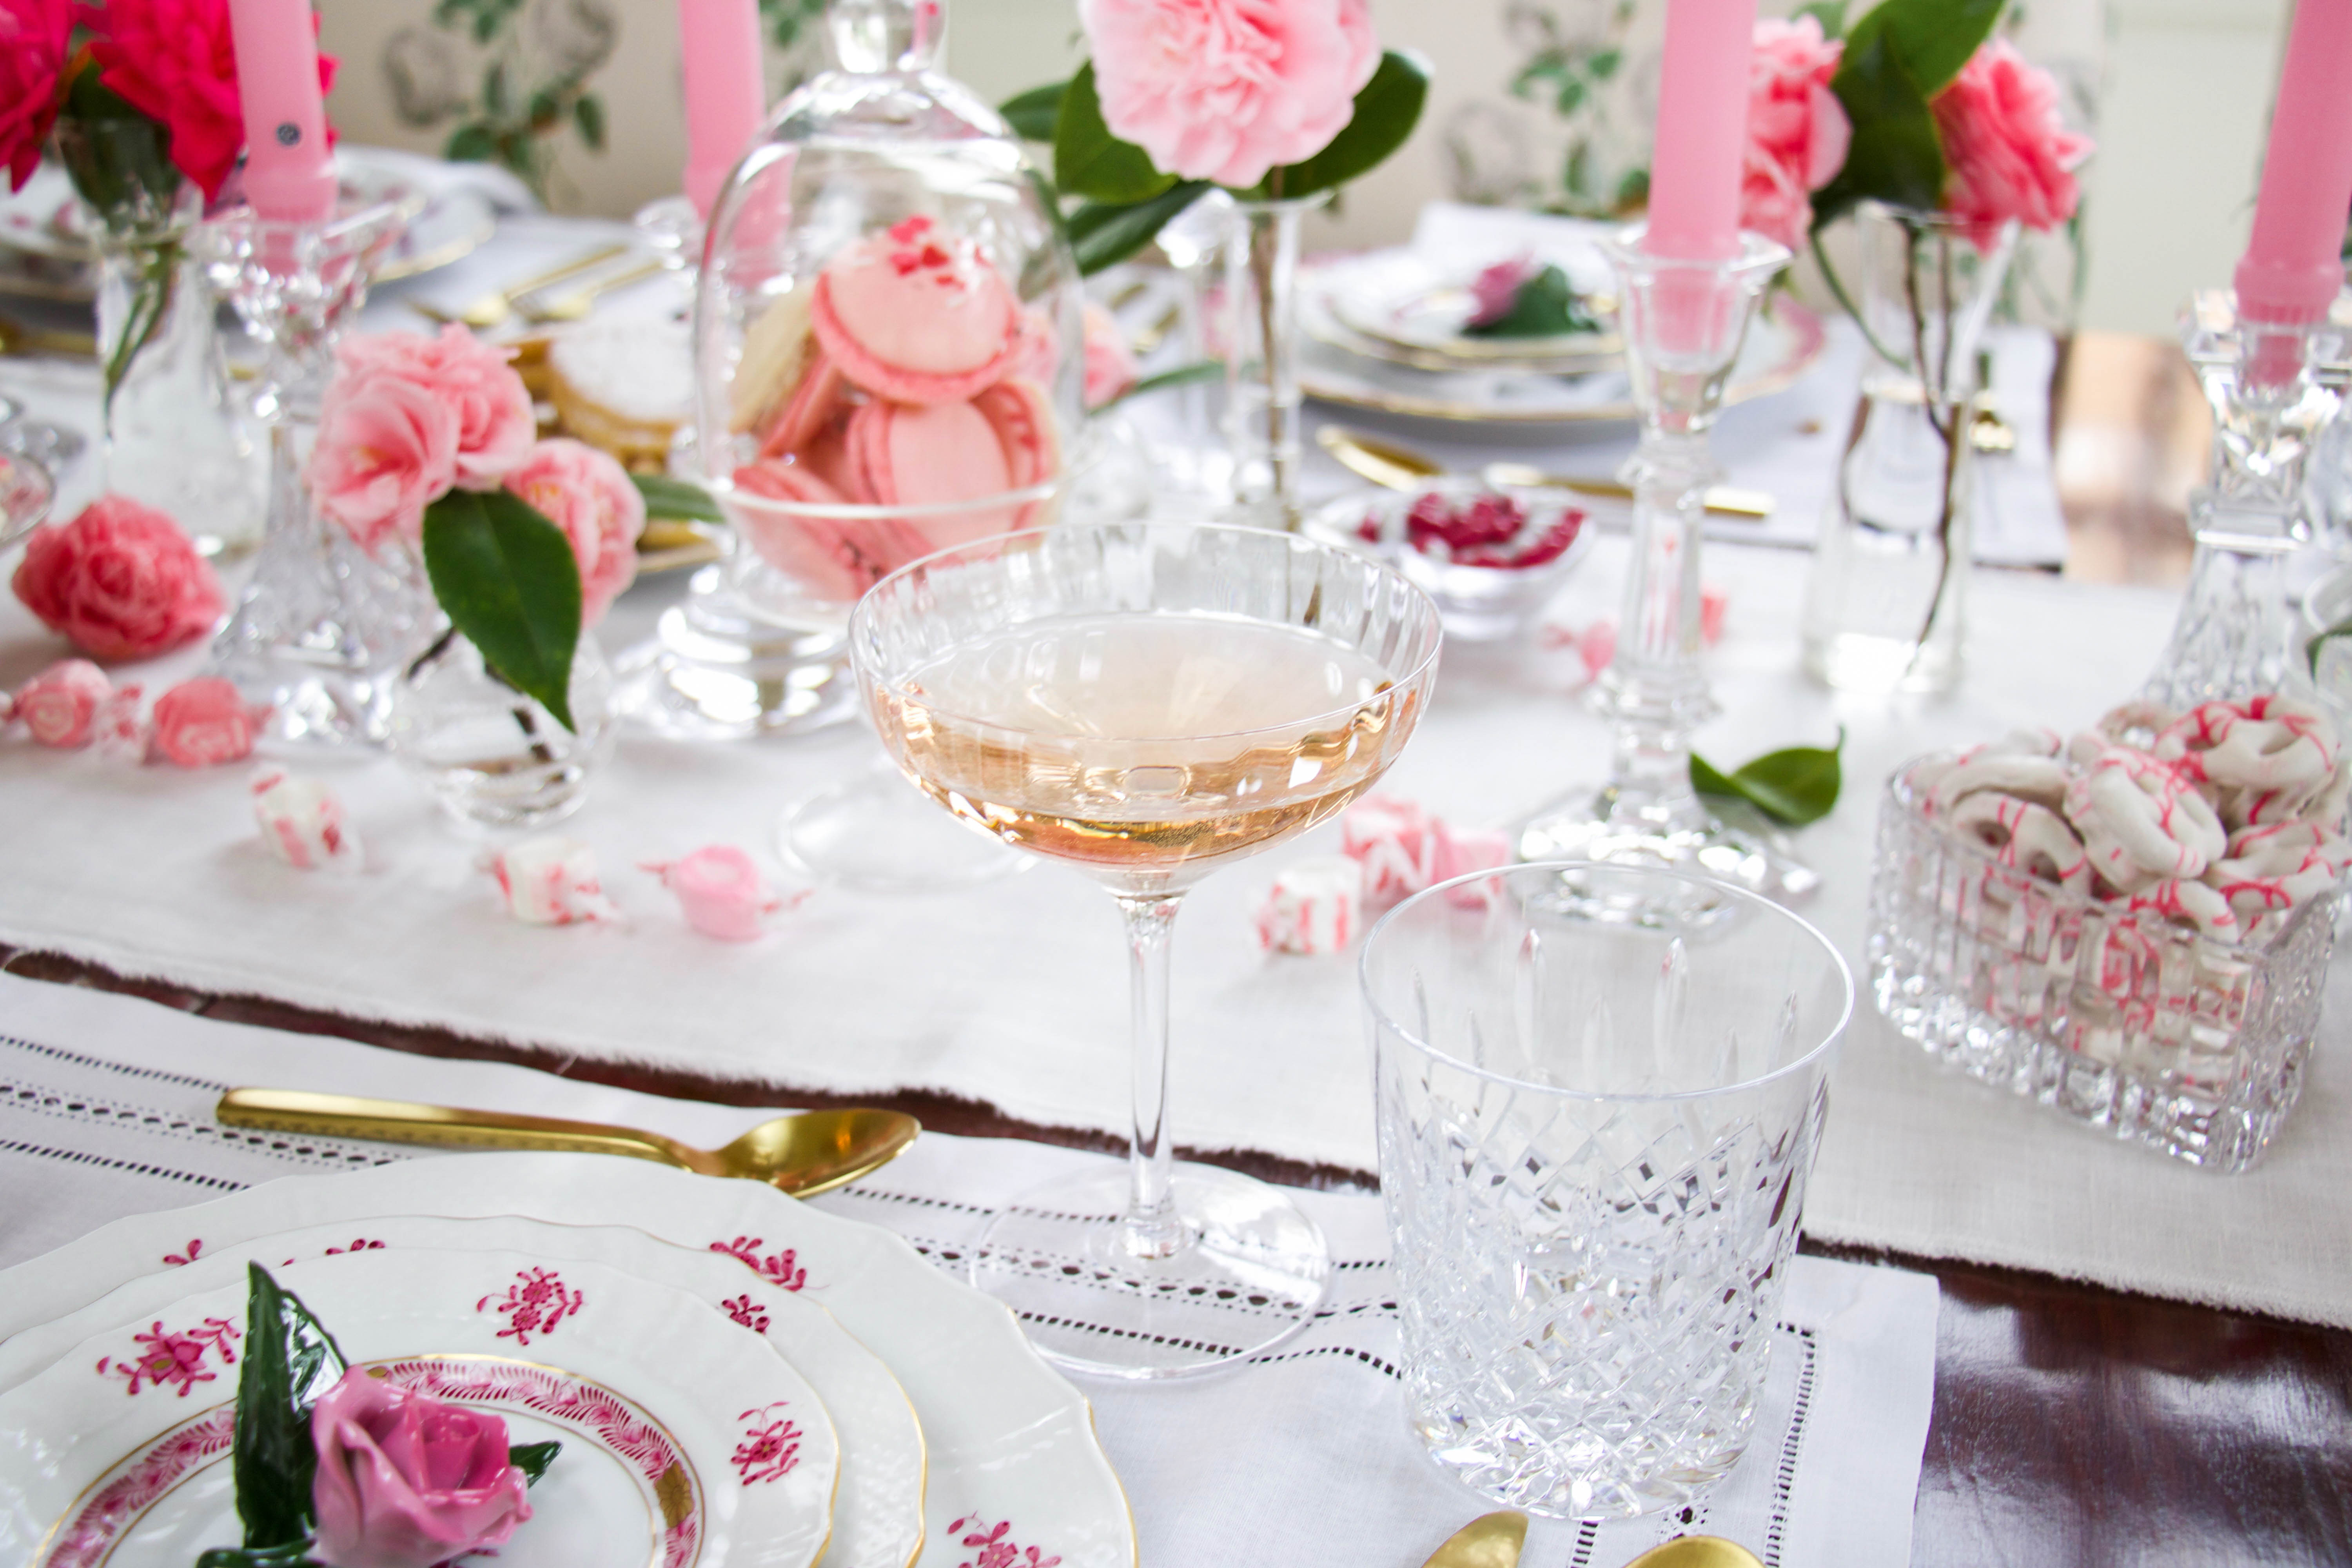 Valentines tablescape | galentines | pink | hearts | rose | mix n match | flowers | pink tapers | gold | china | champagne coupe